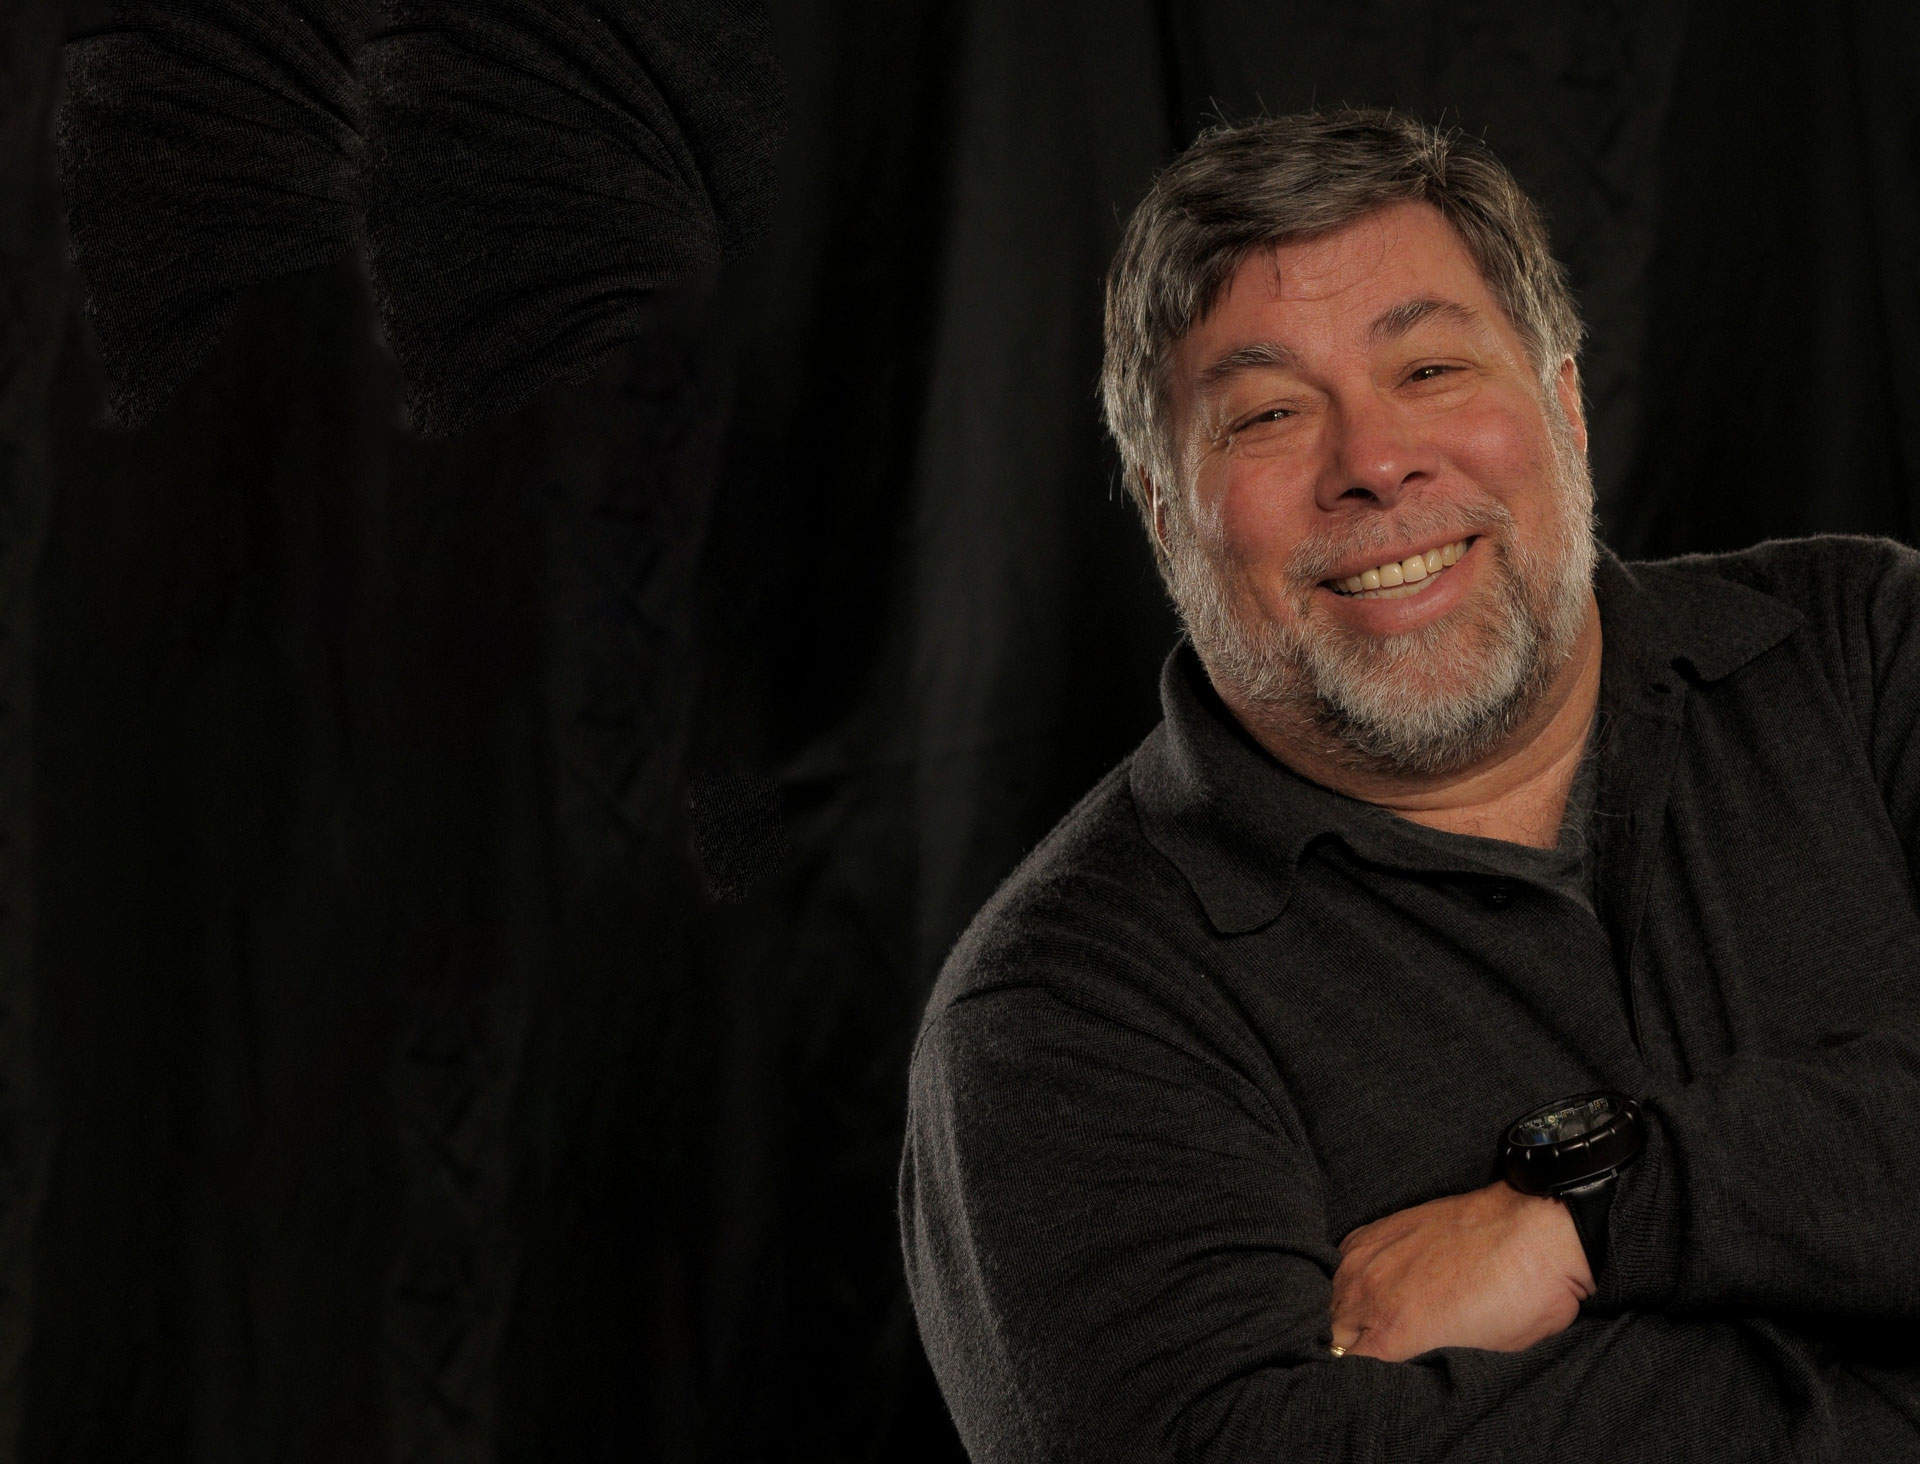 Steve Wozniak takes on the venture capital industry with blockchain